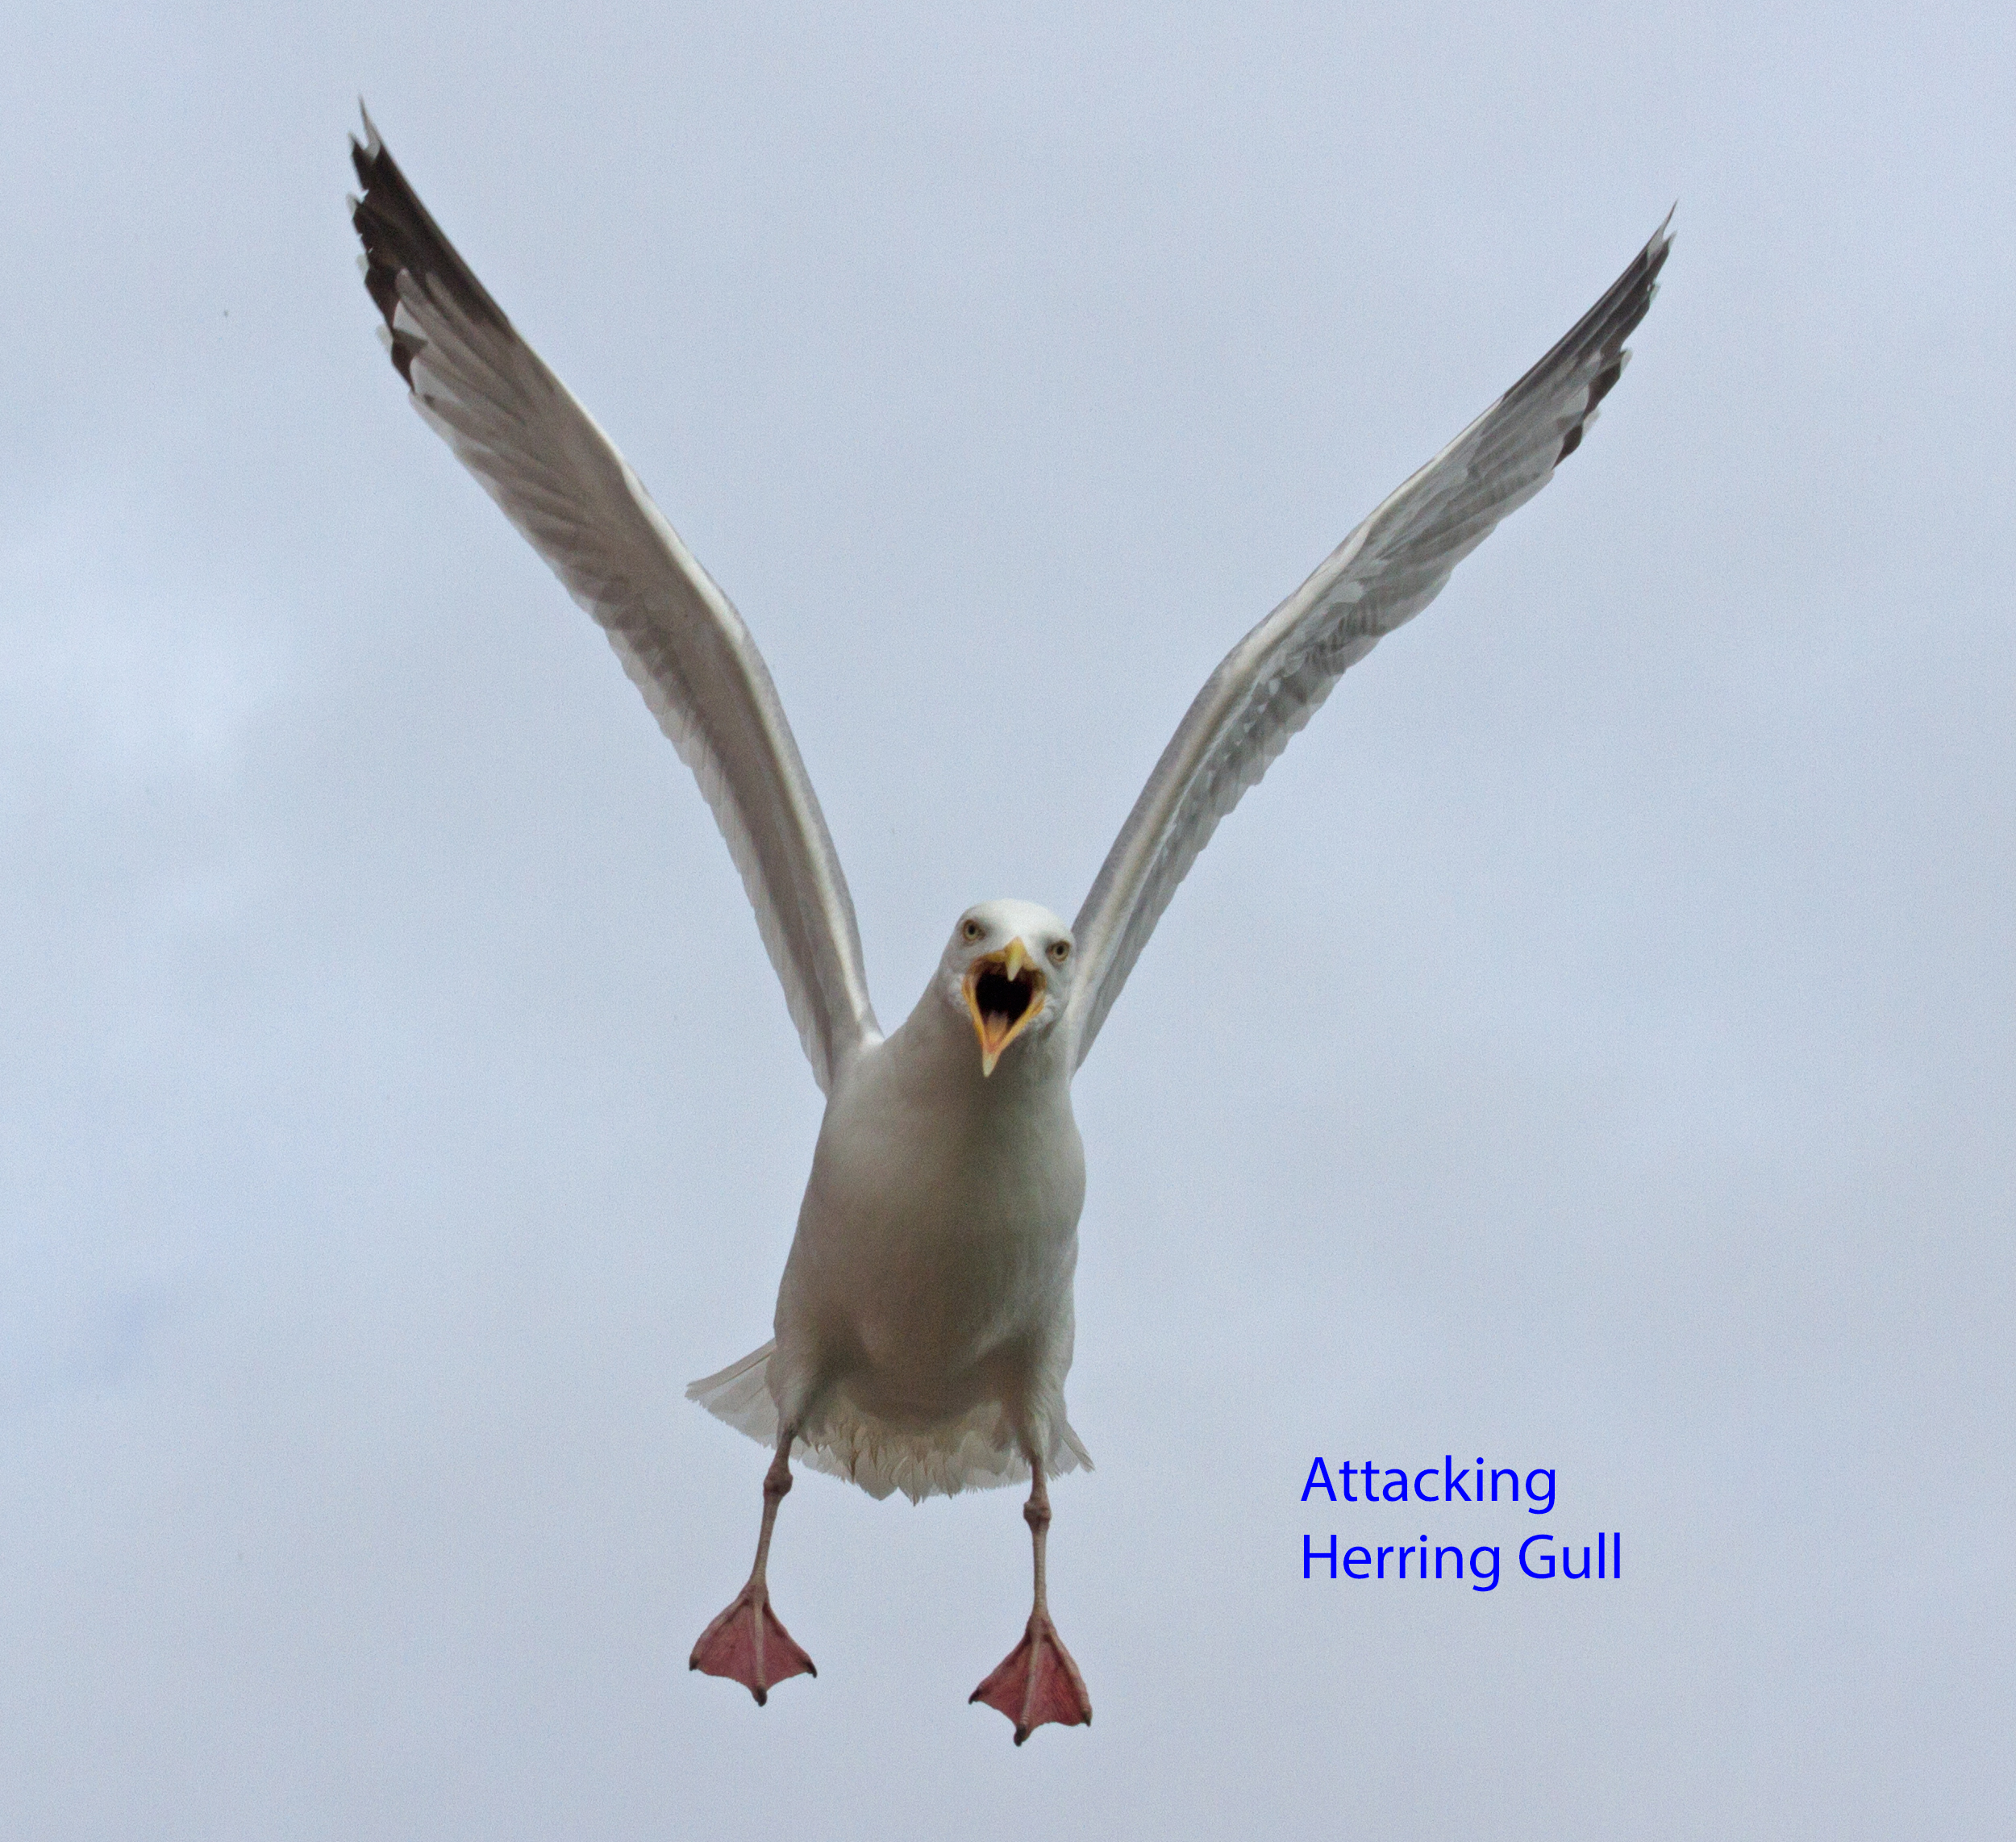 002-attacking-herring-gull-1-1-1eeb671aa5c9f55ab06eabbc9b2886cf9df5c37f